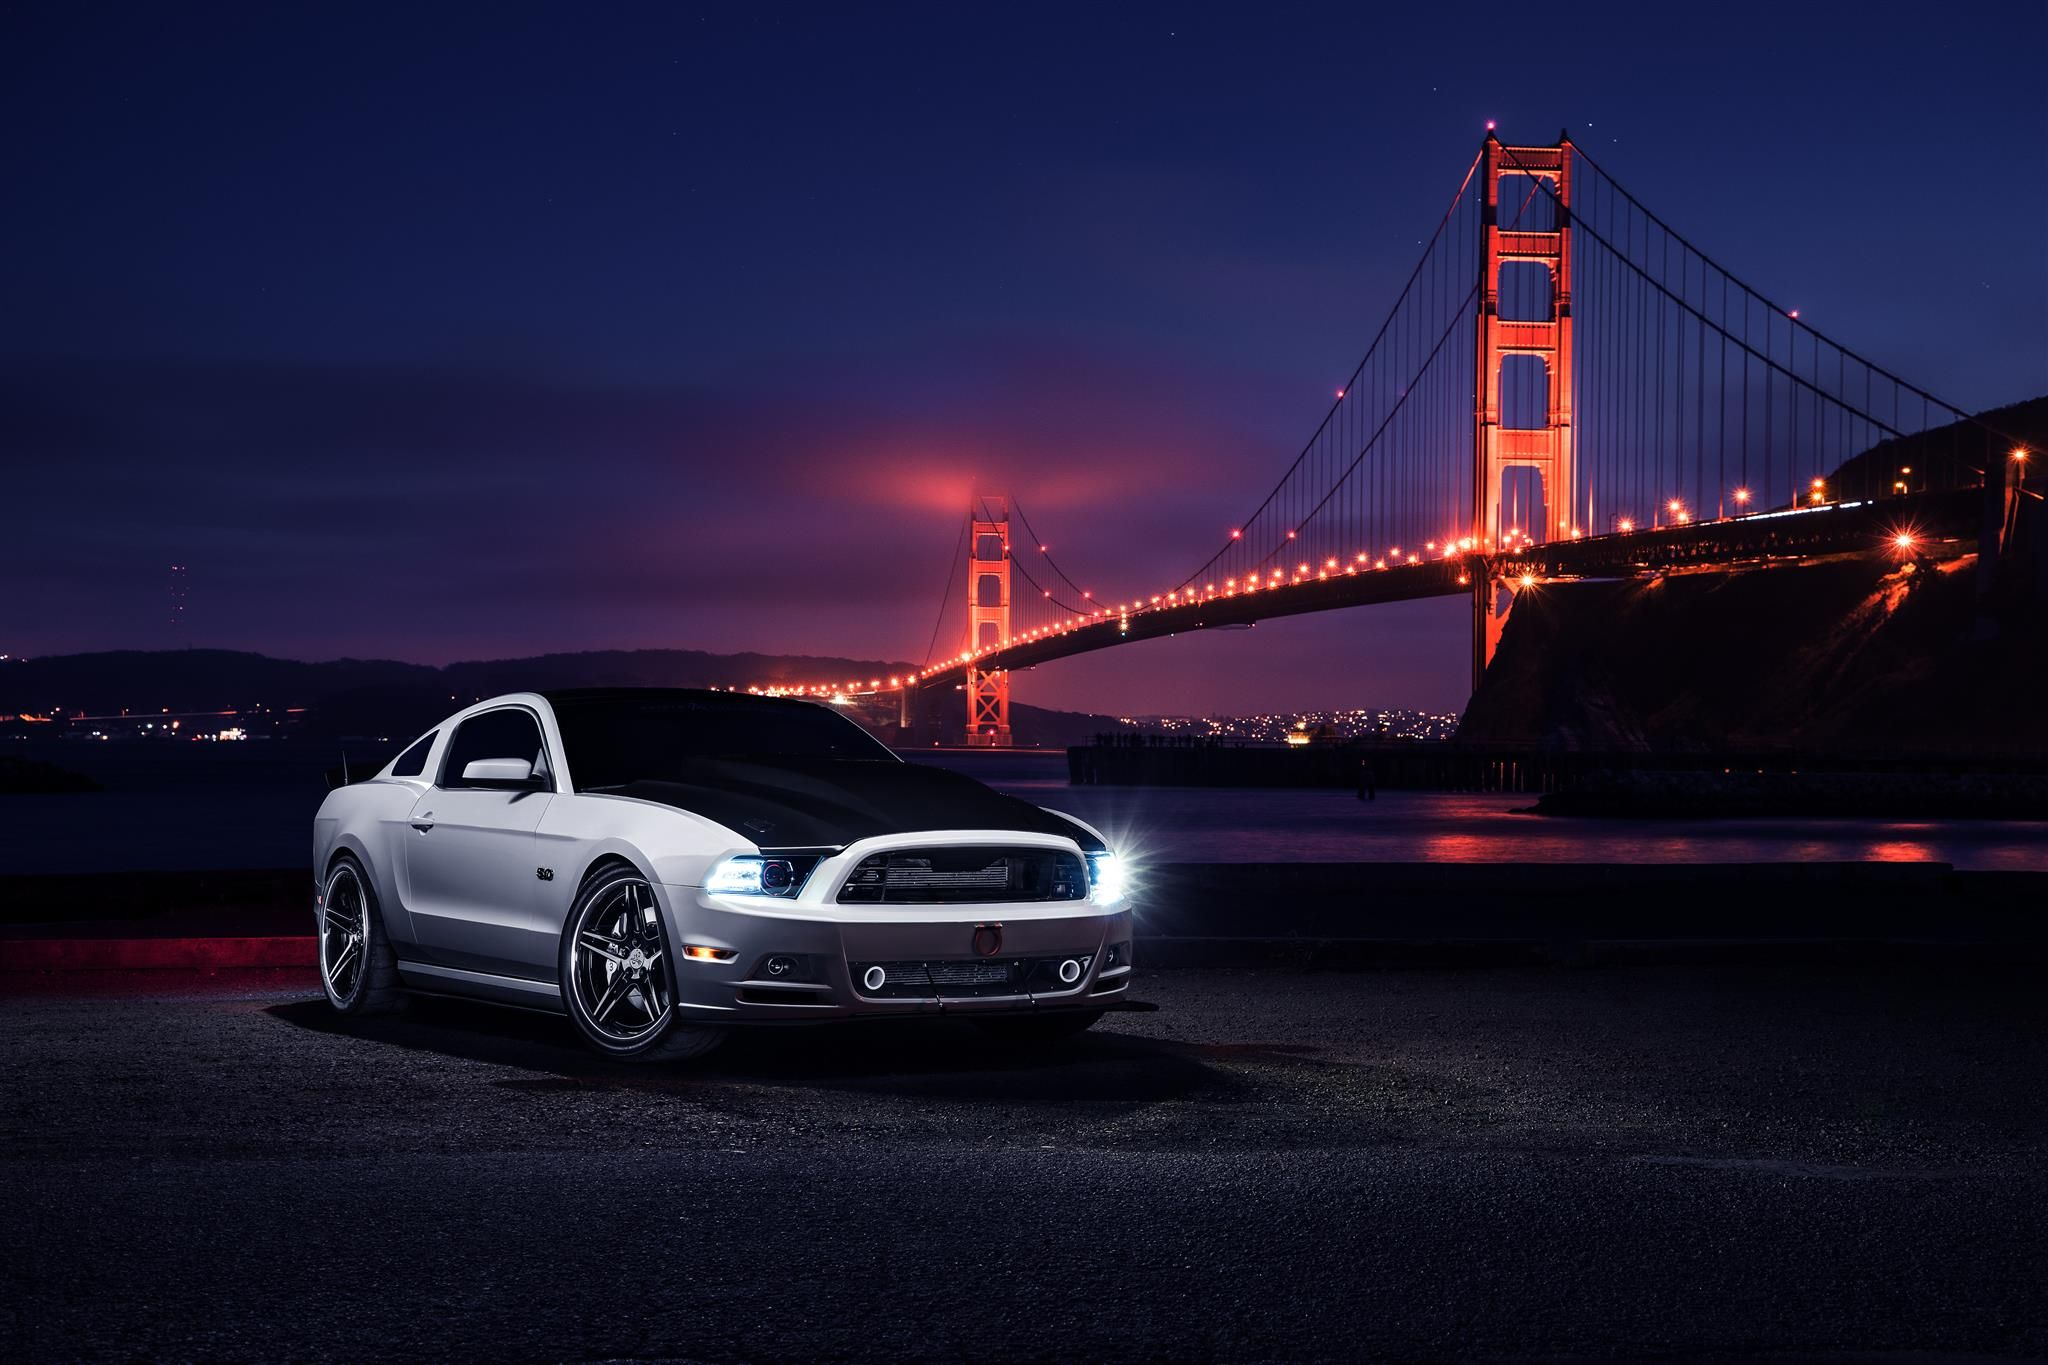 Ford Mustang Luxury 5 Split Concave Aristo Collection Photo 166488 Ford Mustang Mustang Car Wallpapers